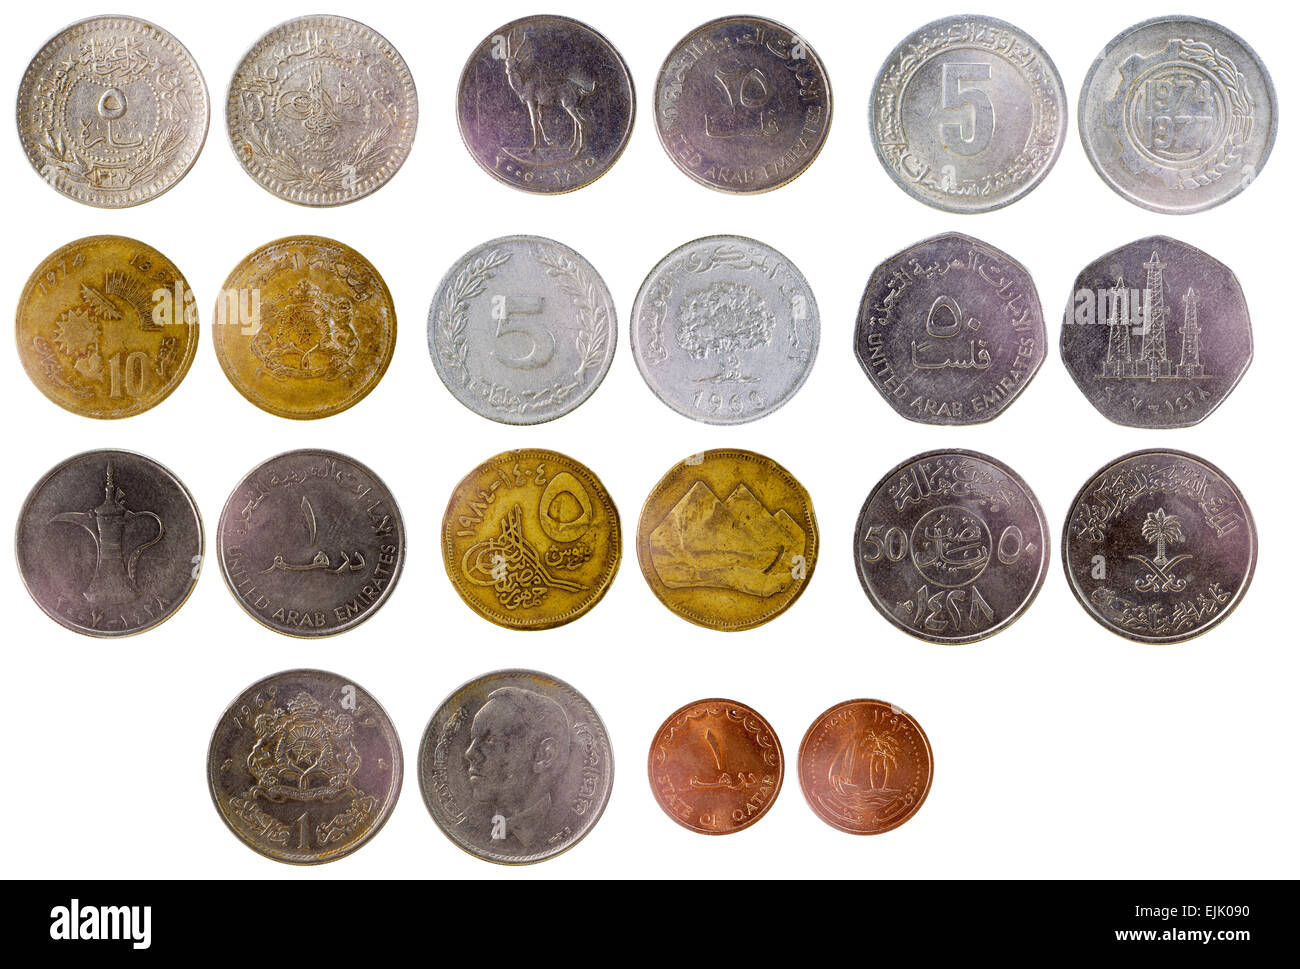 different old arab coins isolated on white background - Stock Image